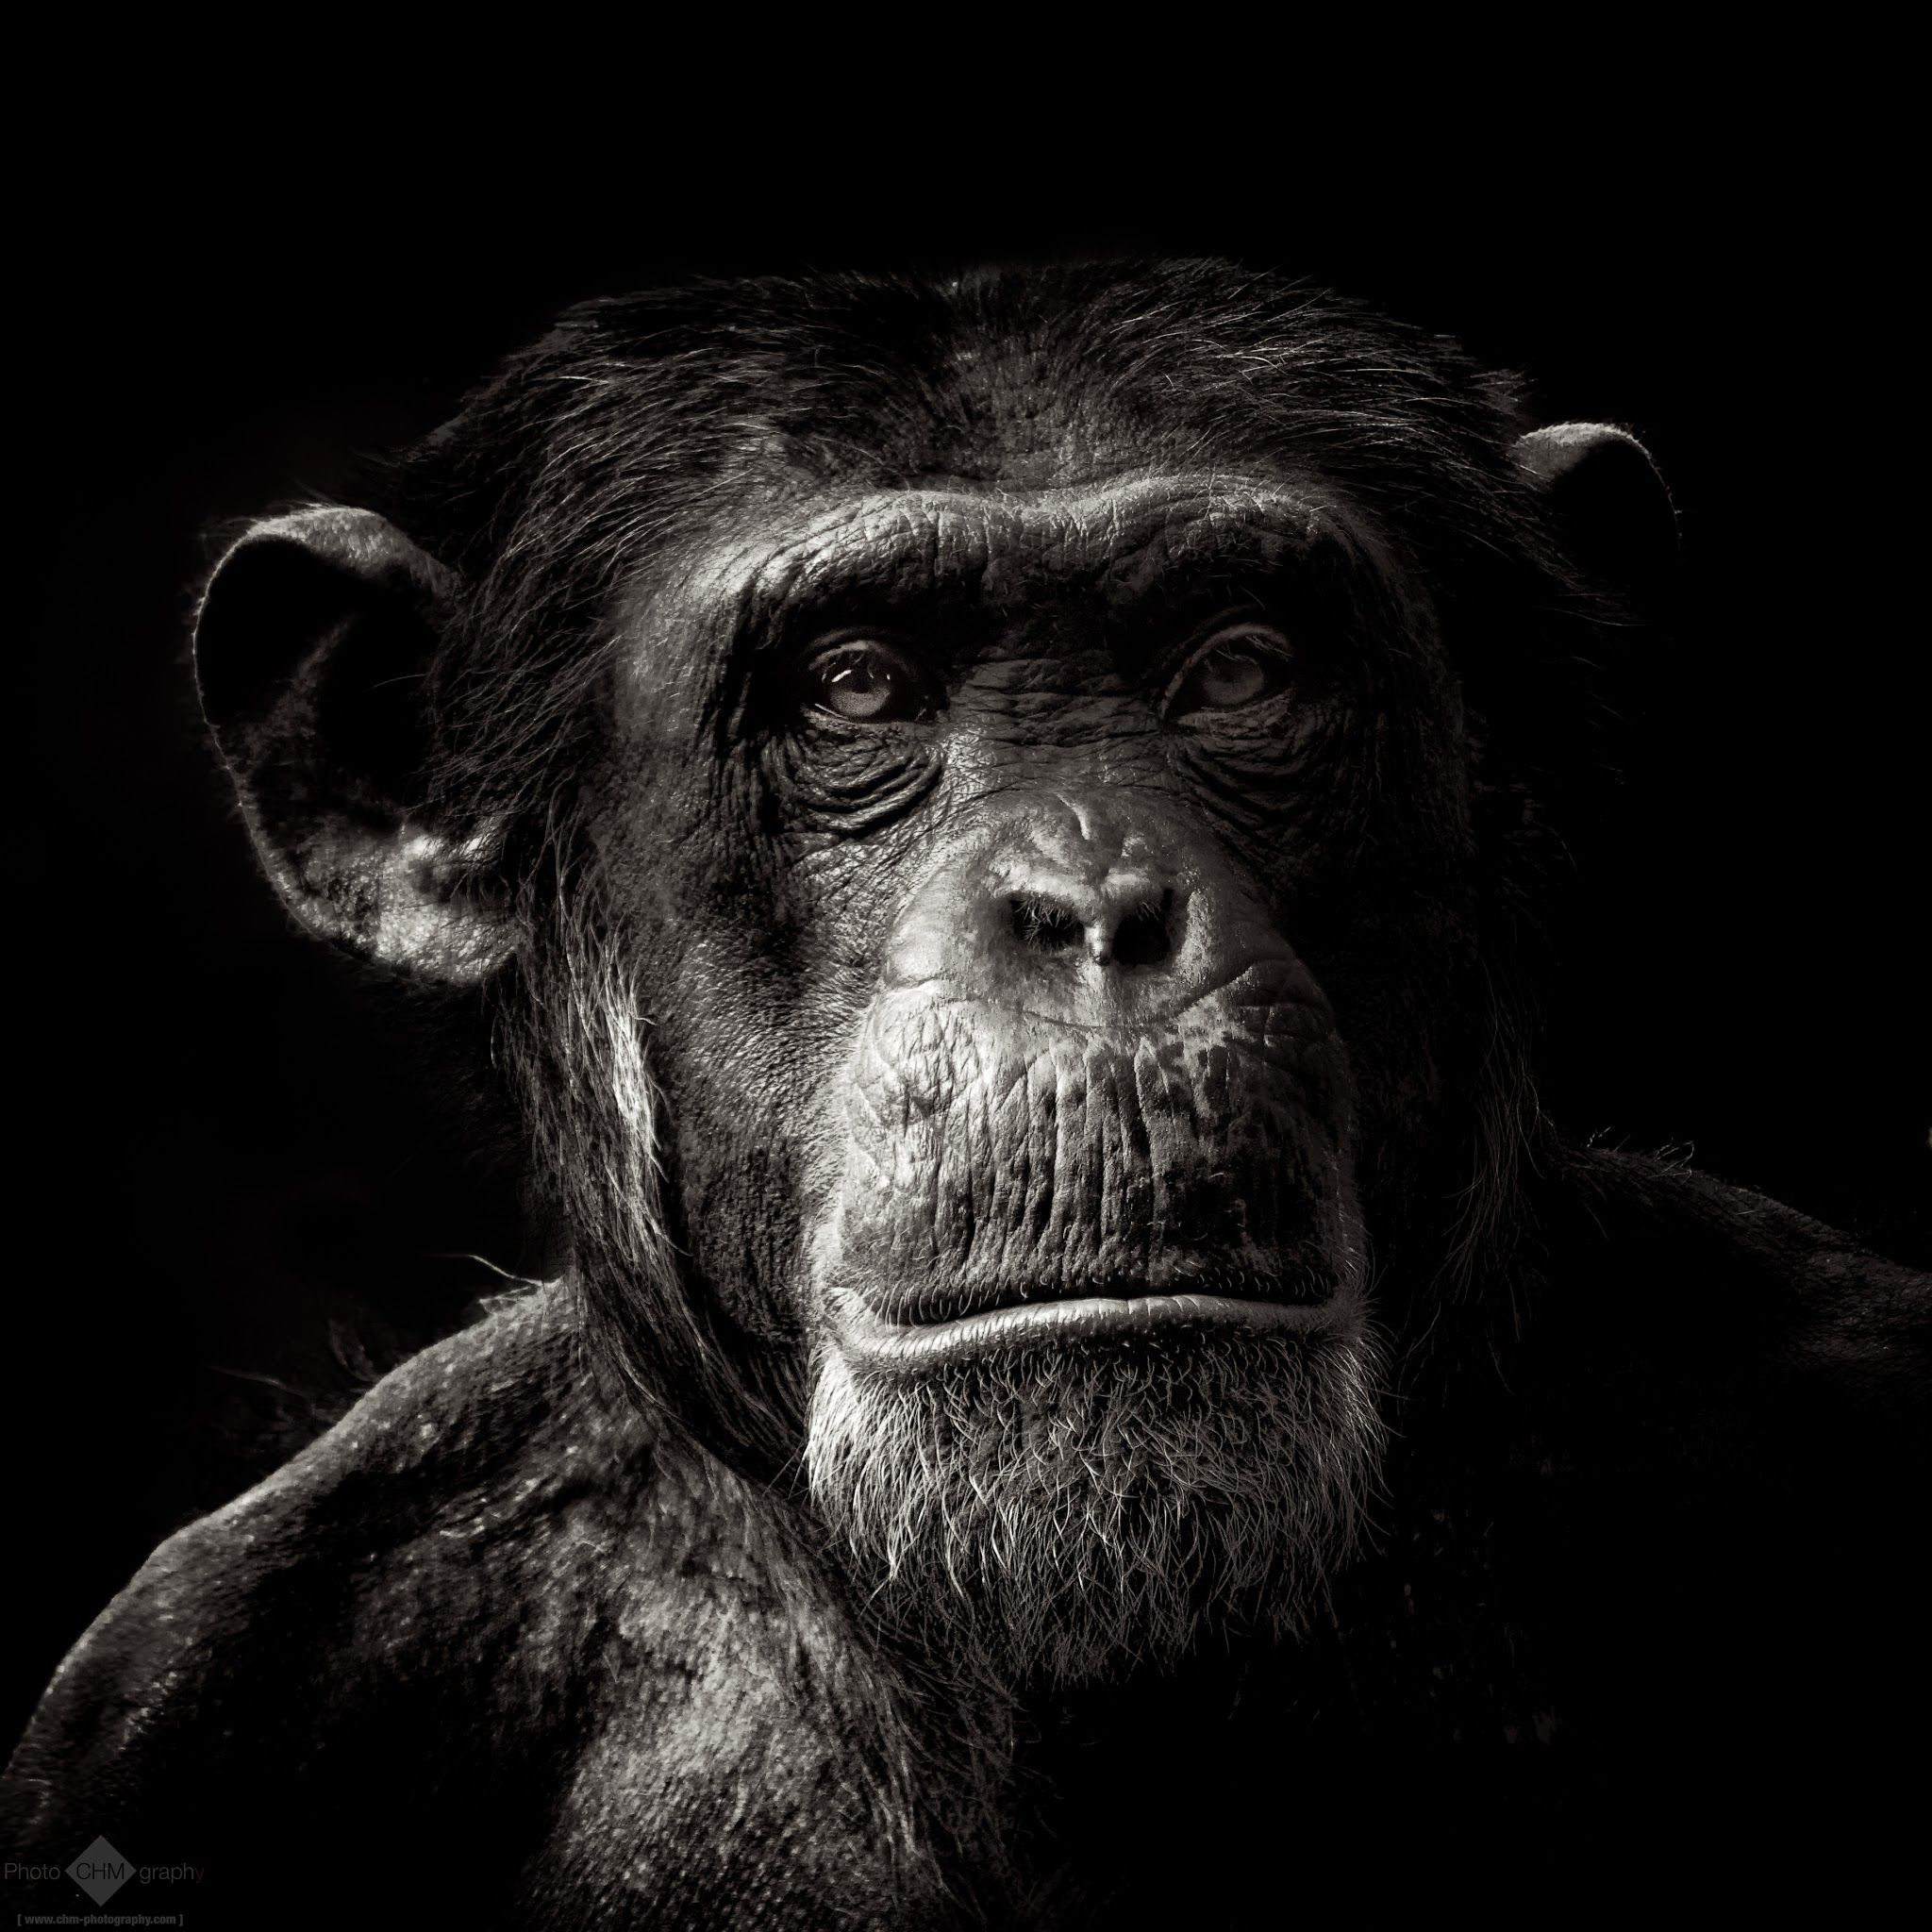 Chimpanzee pictures chimpanzees are all black but - Chimp Christian Meermann